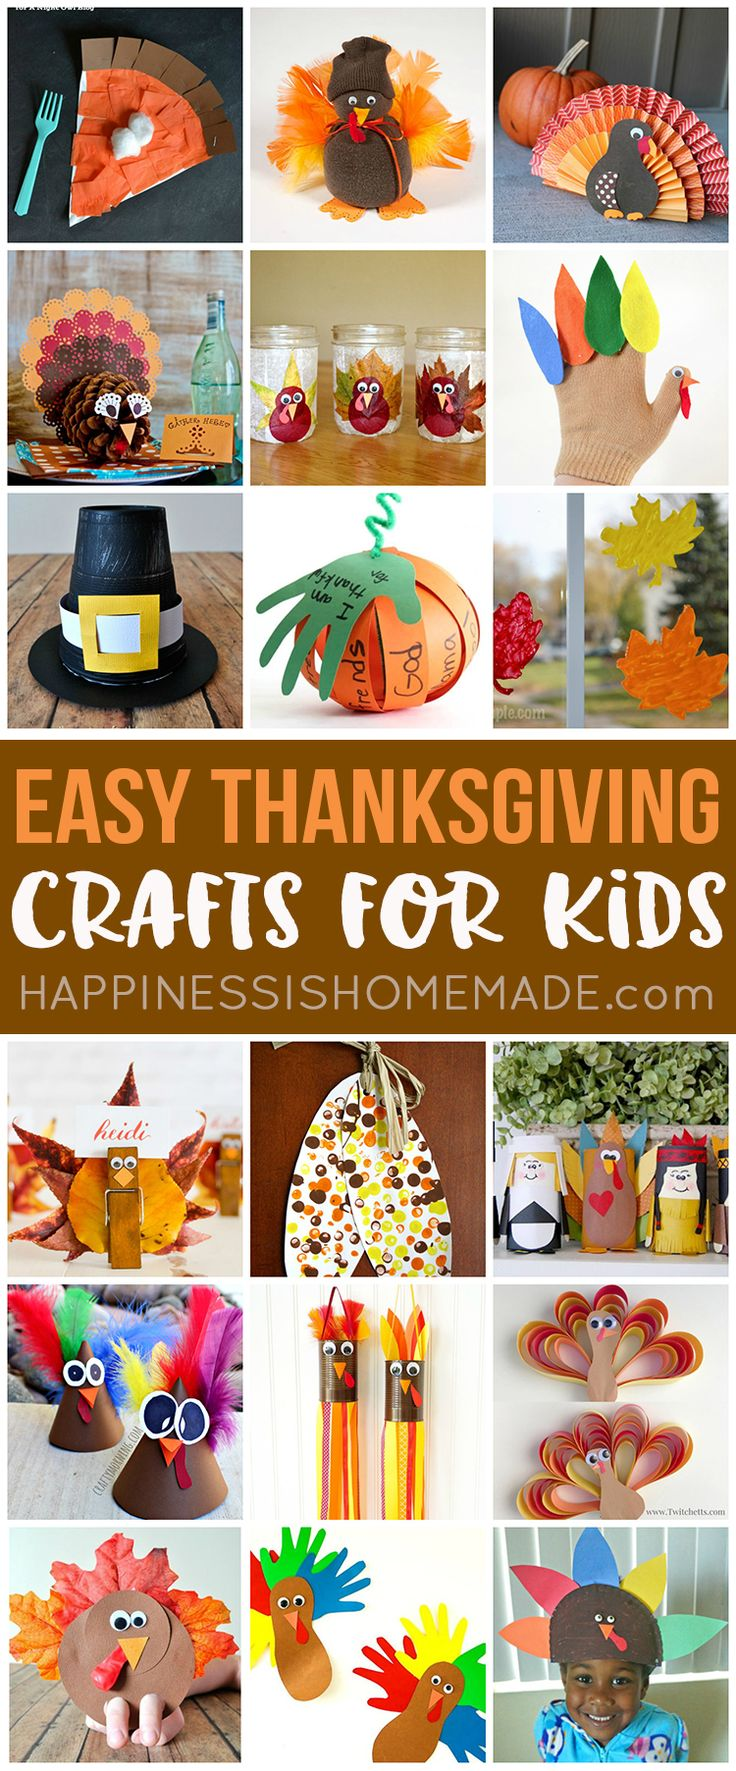 These quick and easy Thanksgiving crafts for kids can be made in under 30 minutes using items that you probably already have around the house! No special tools or skills are required, so ANYONE can make these cute Thanksgiving kids crafts! Great fun for the entire family! via @hiHomemadeBlog